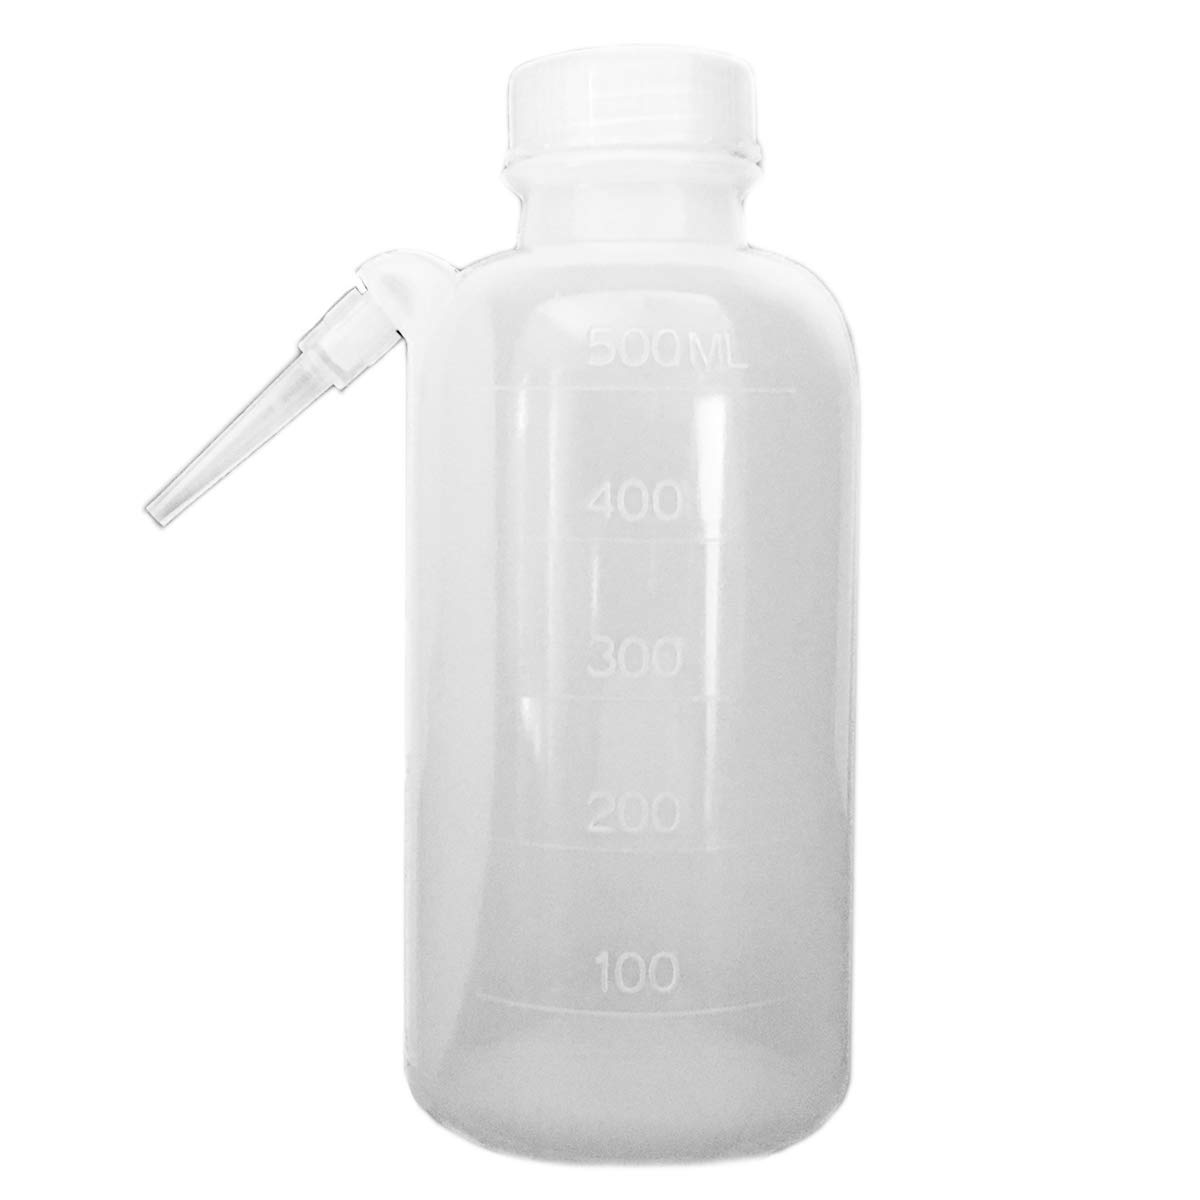 Firefly Refill Bottle for Refillable Liquid Candles